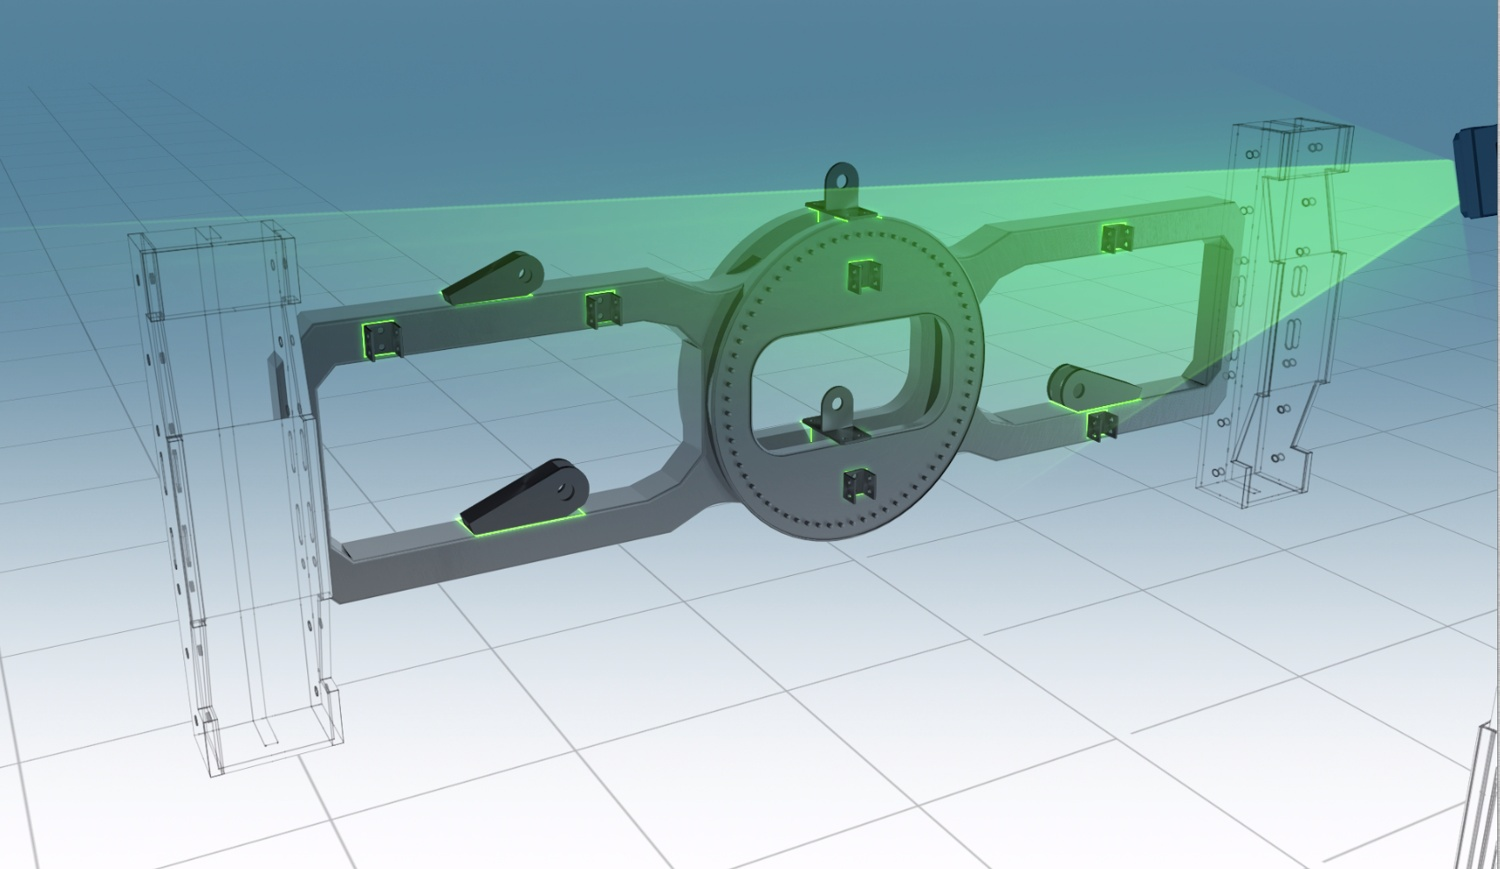 Part Positioning and Assembly